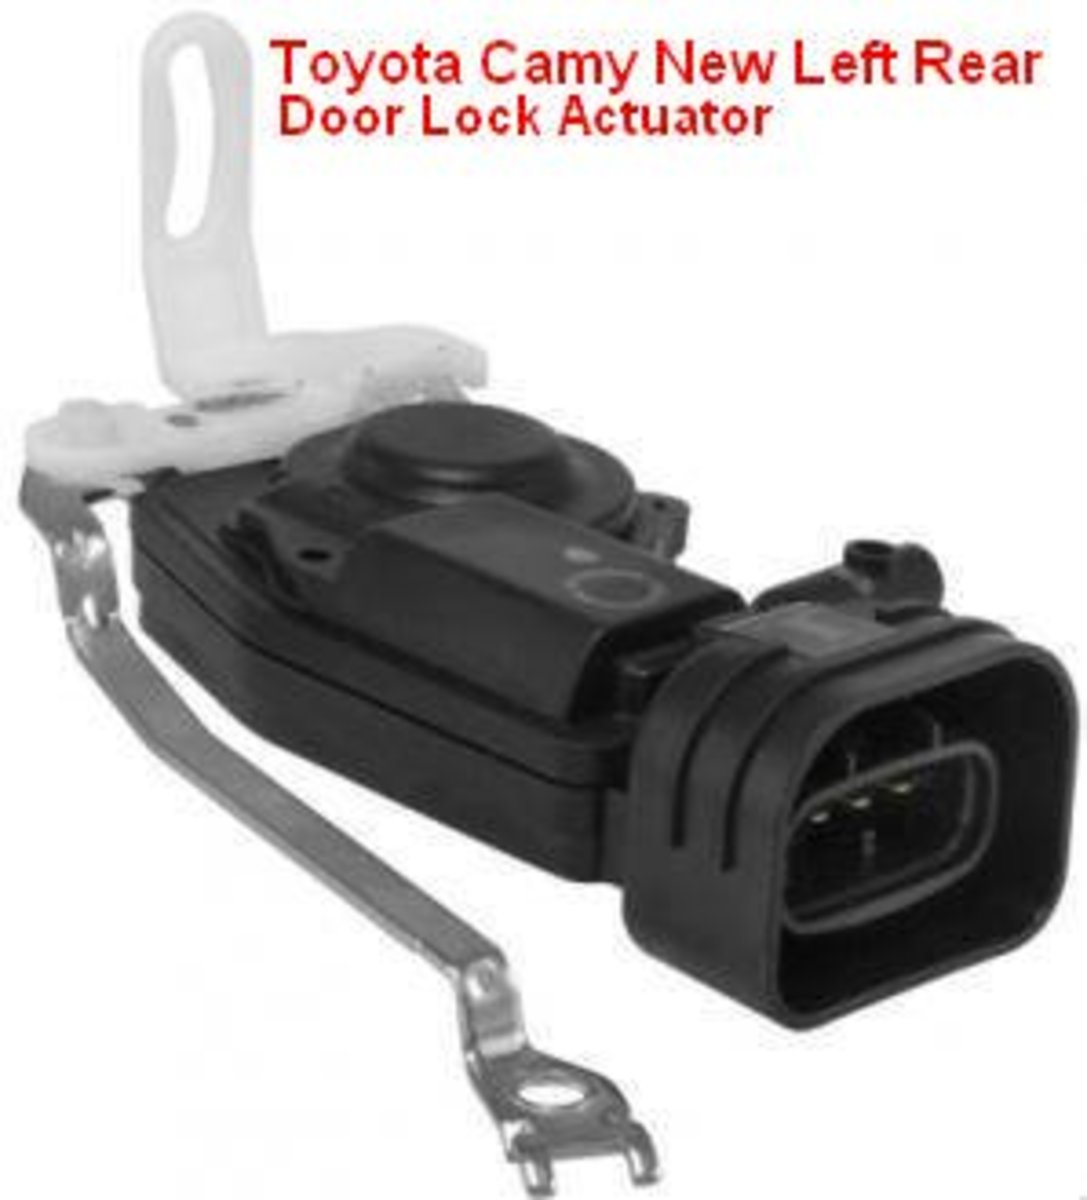 New Toyota Camry Left Rear Door Lock Actuator